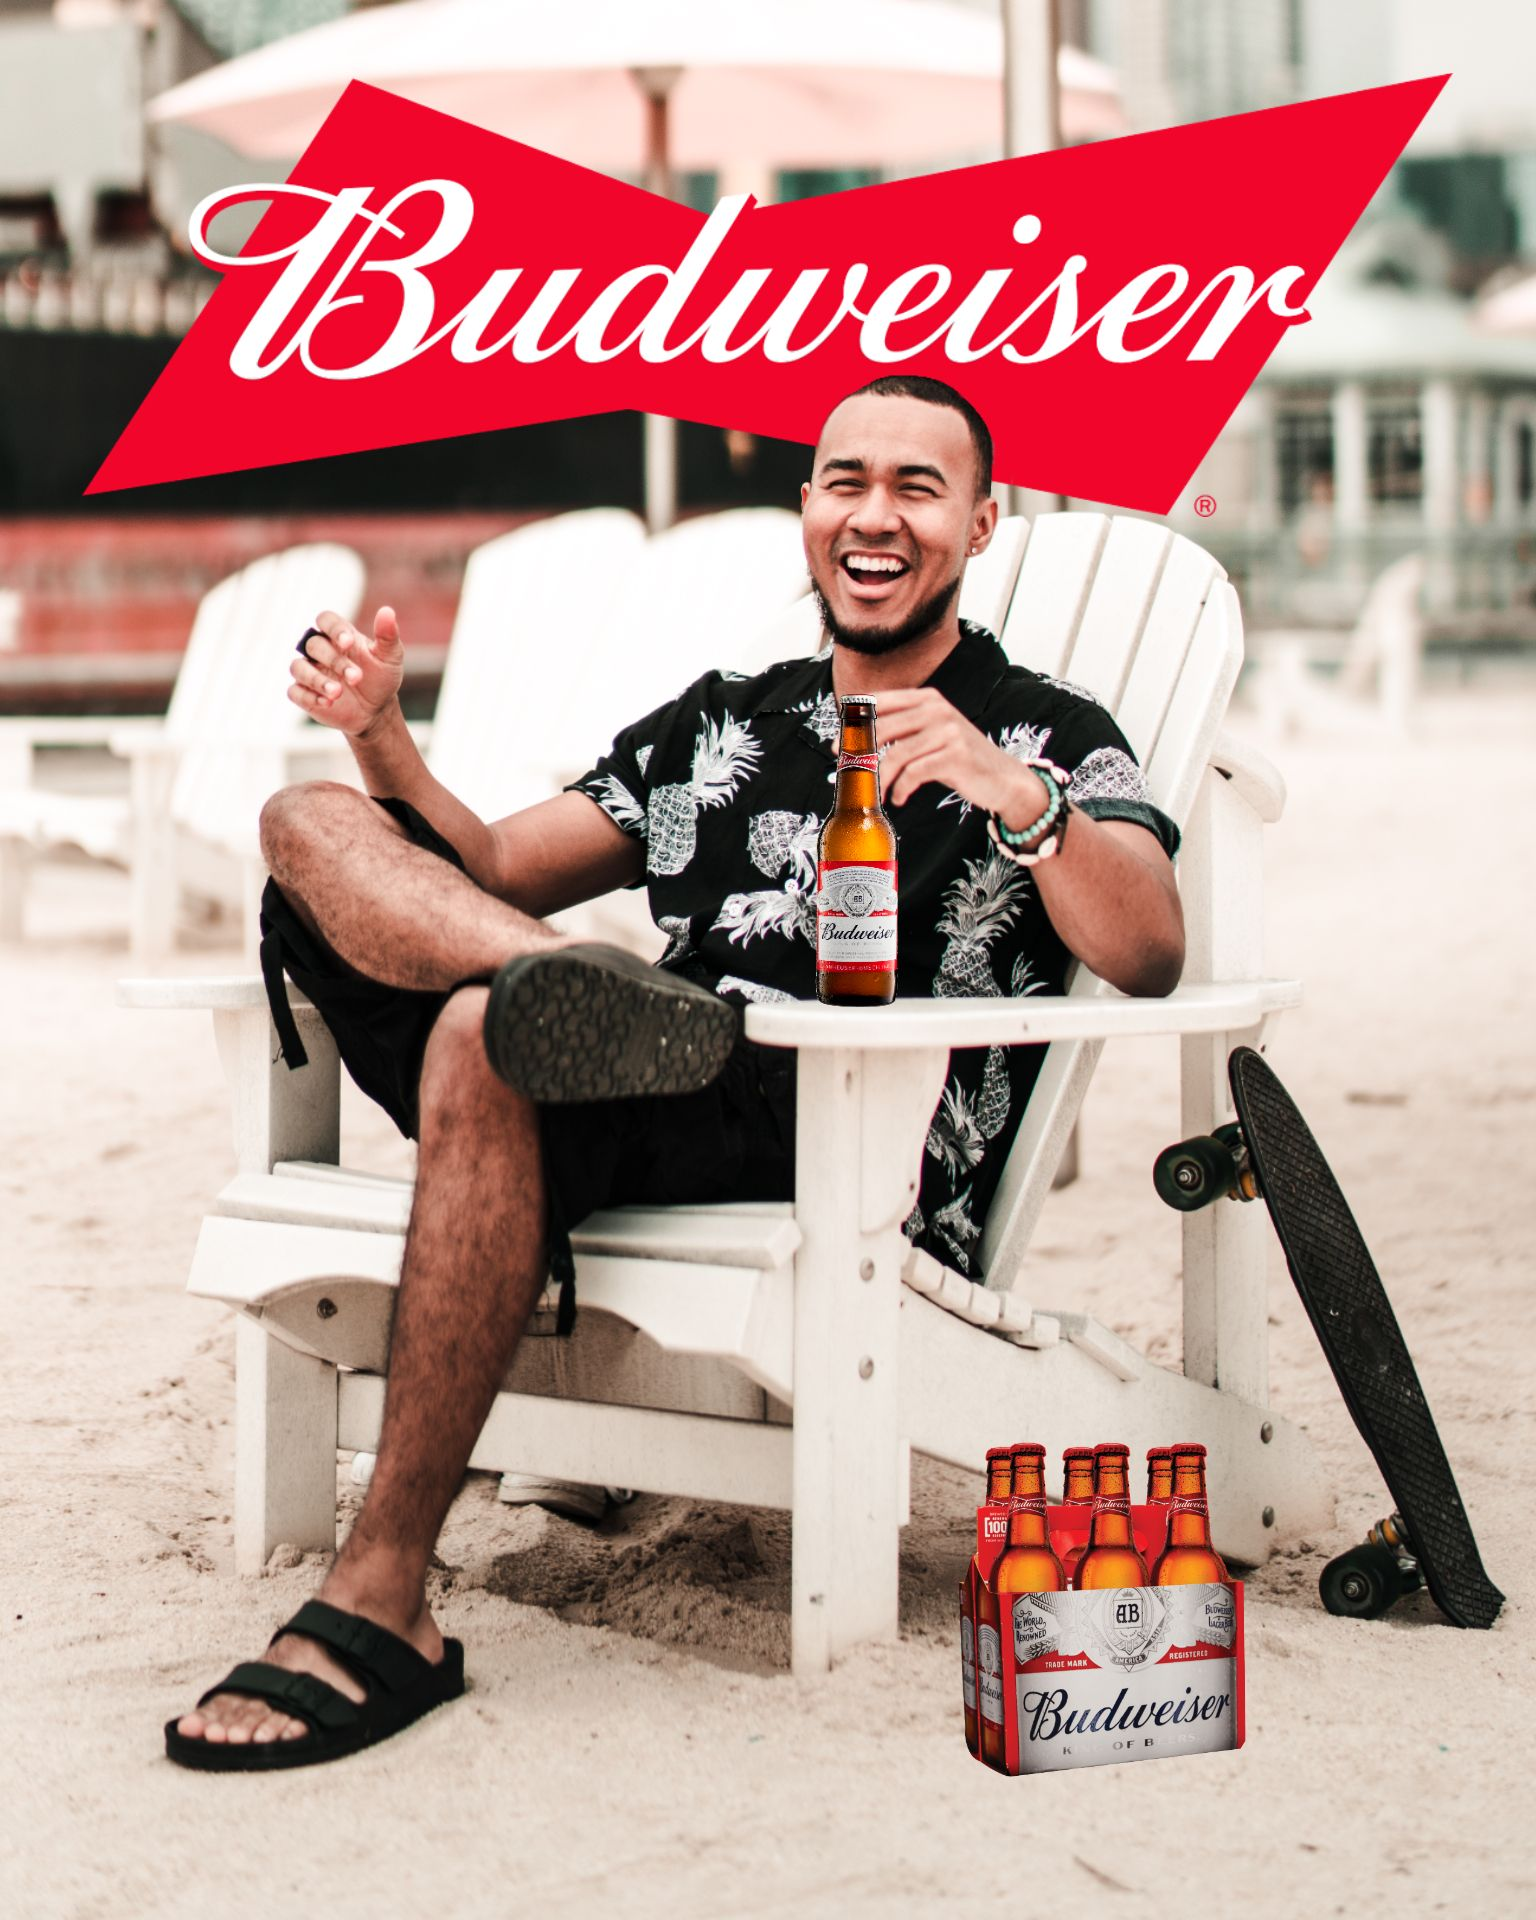 An example of the TikTok Beer Poster trend using the Budweiser brand.